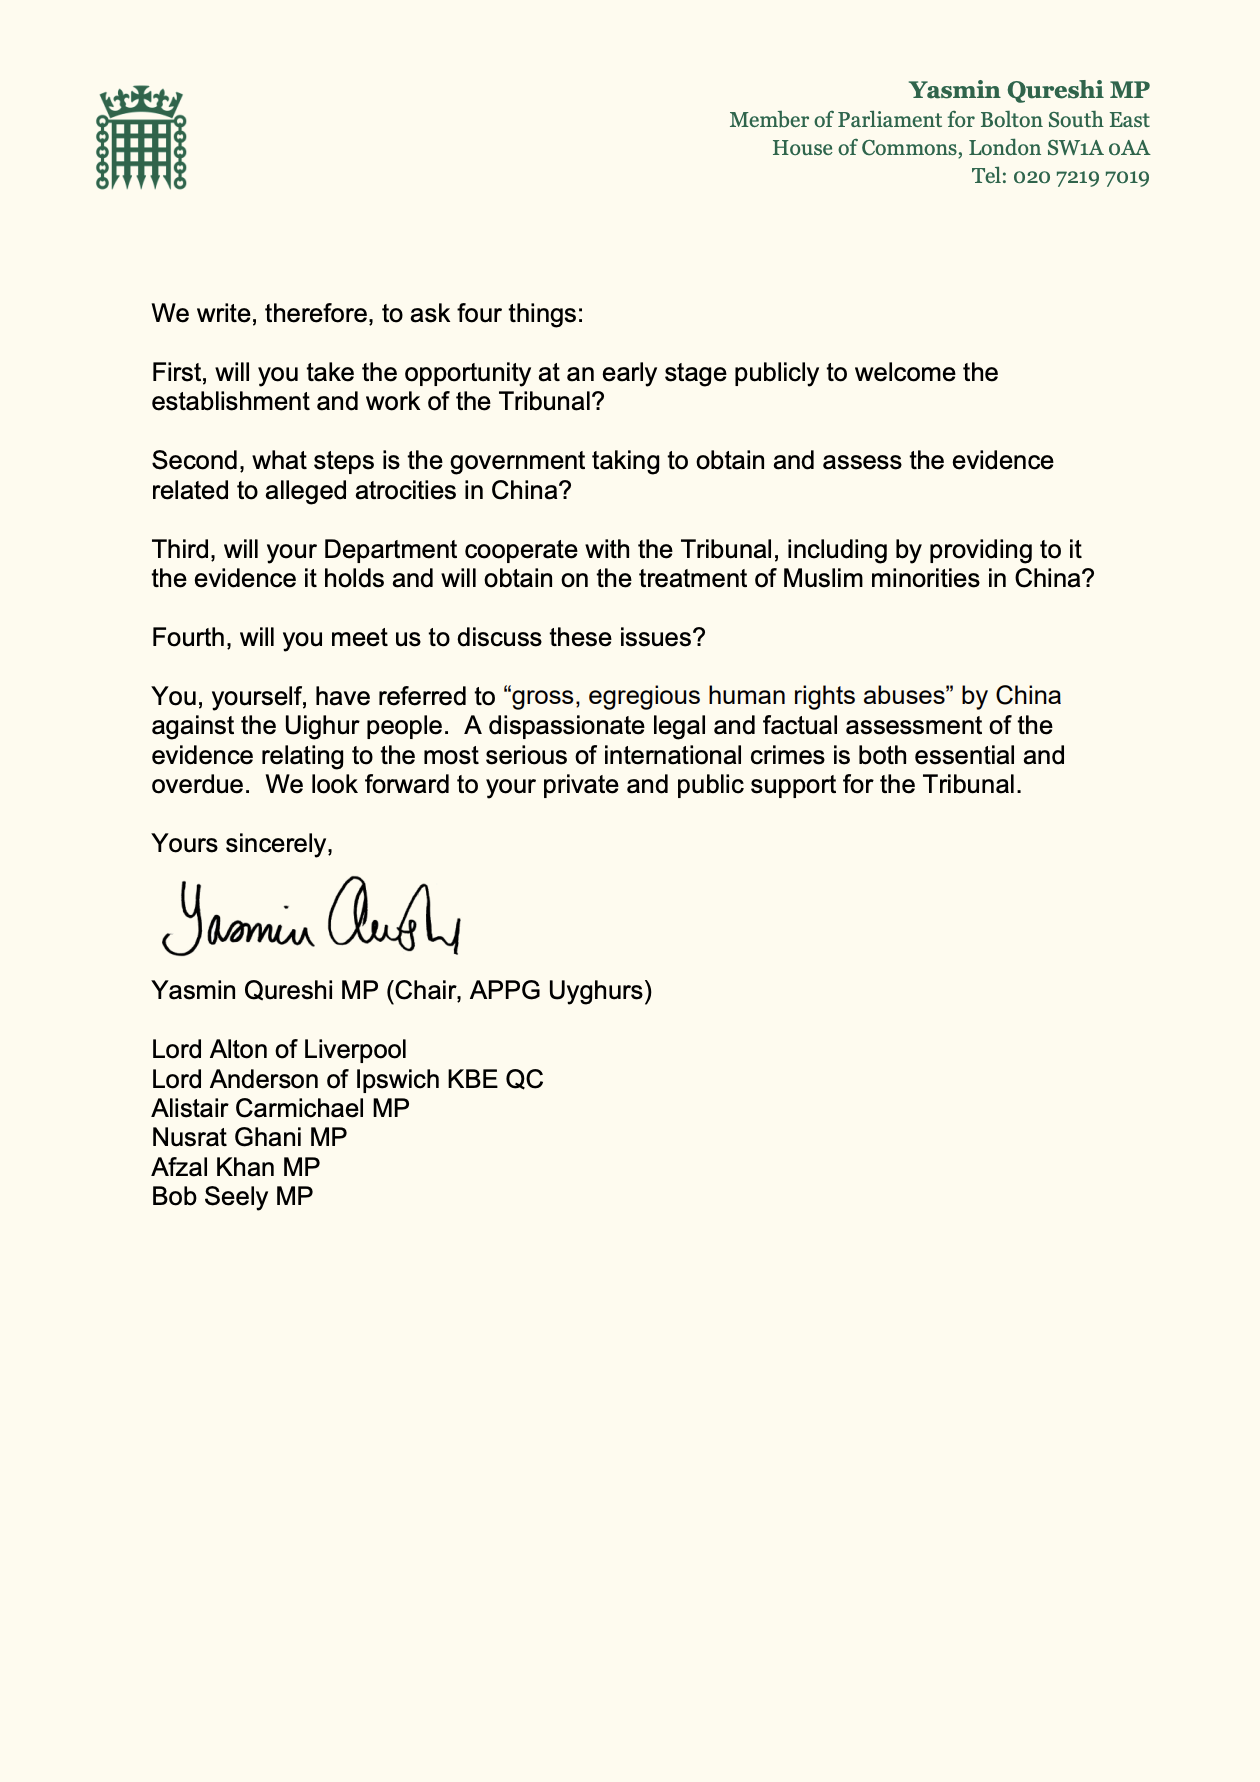 Letter to Dominic Raab re: Uyghurs